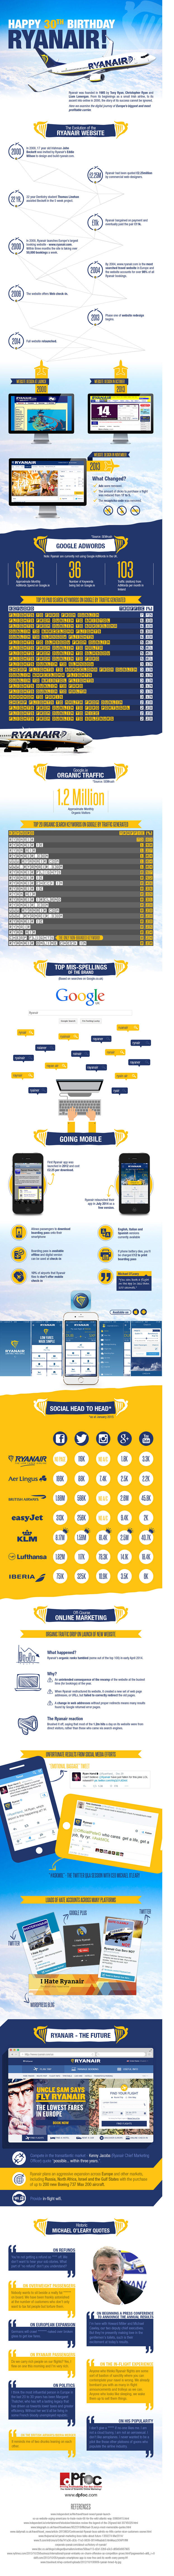 ryanair better customer experience infographic